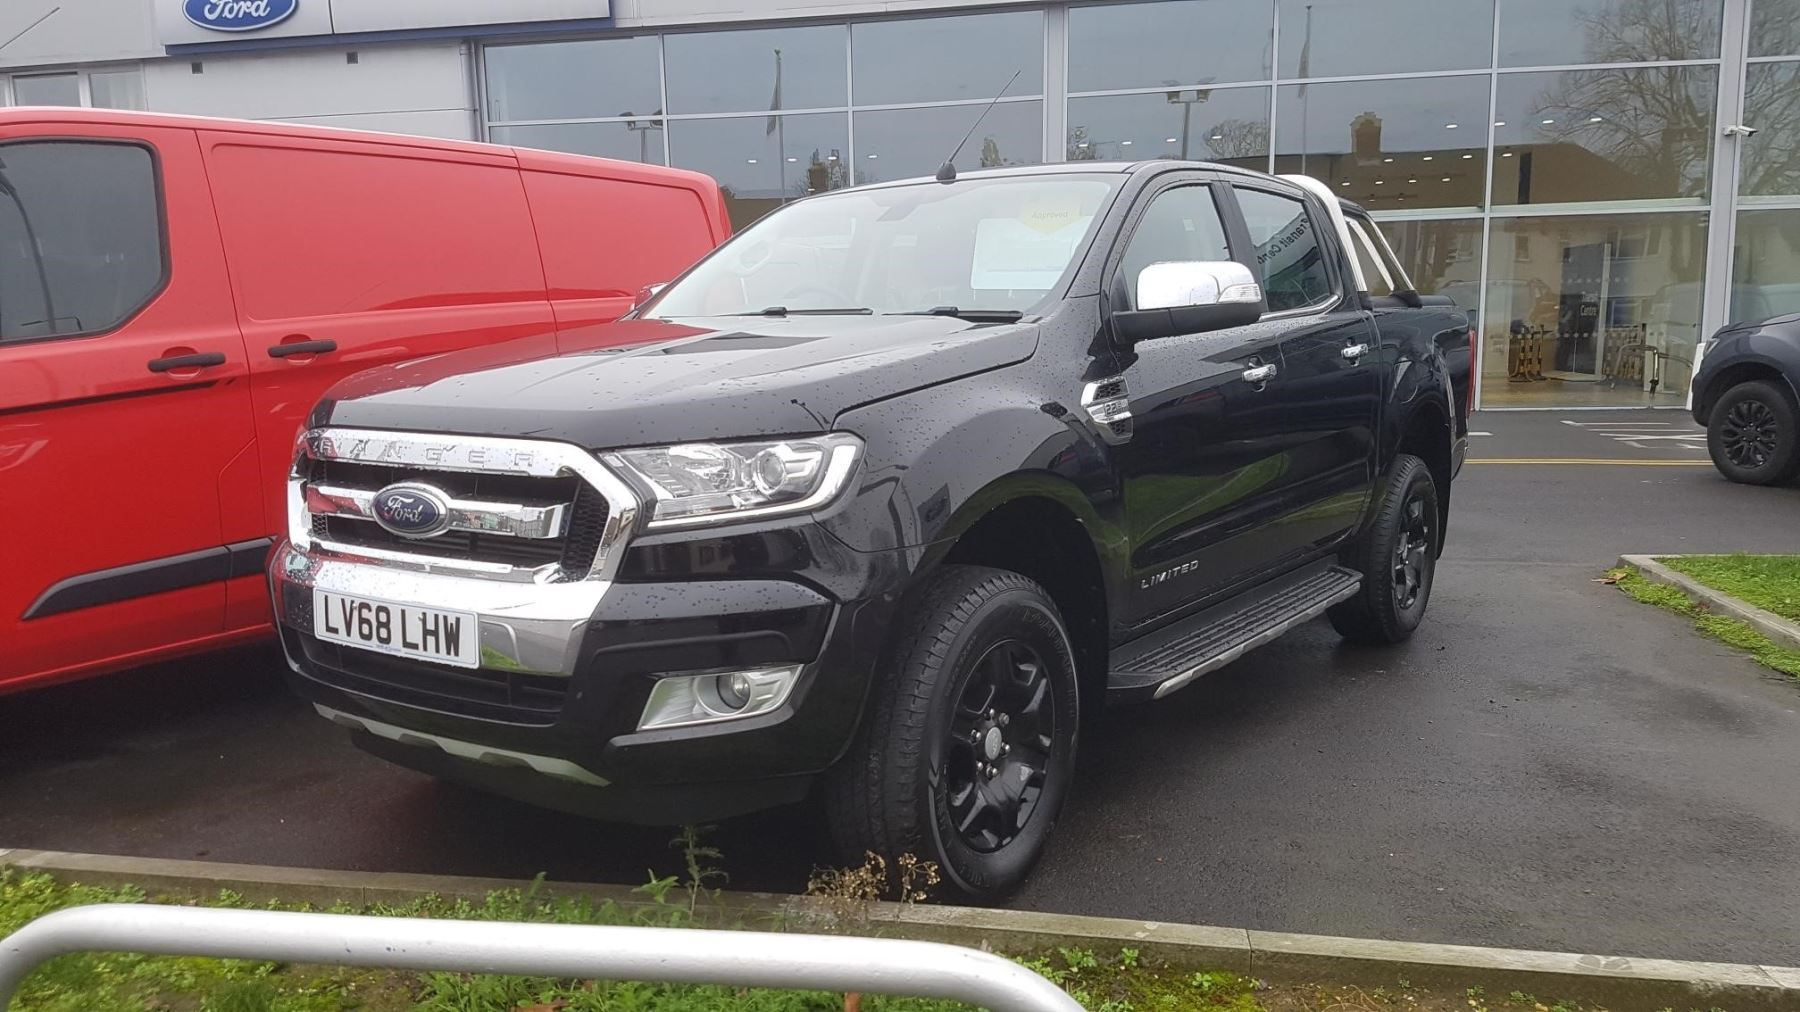 Ford New Ranger 4X4 Double Cab LTD 2.2 #NO VAT# Diesel Automatic 4 door Pickup (2018)